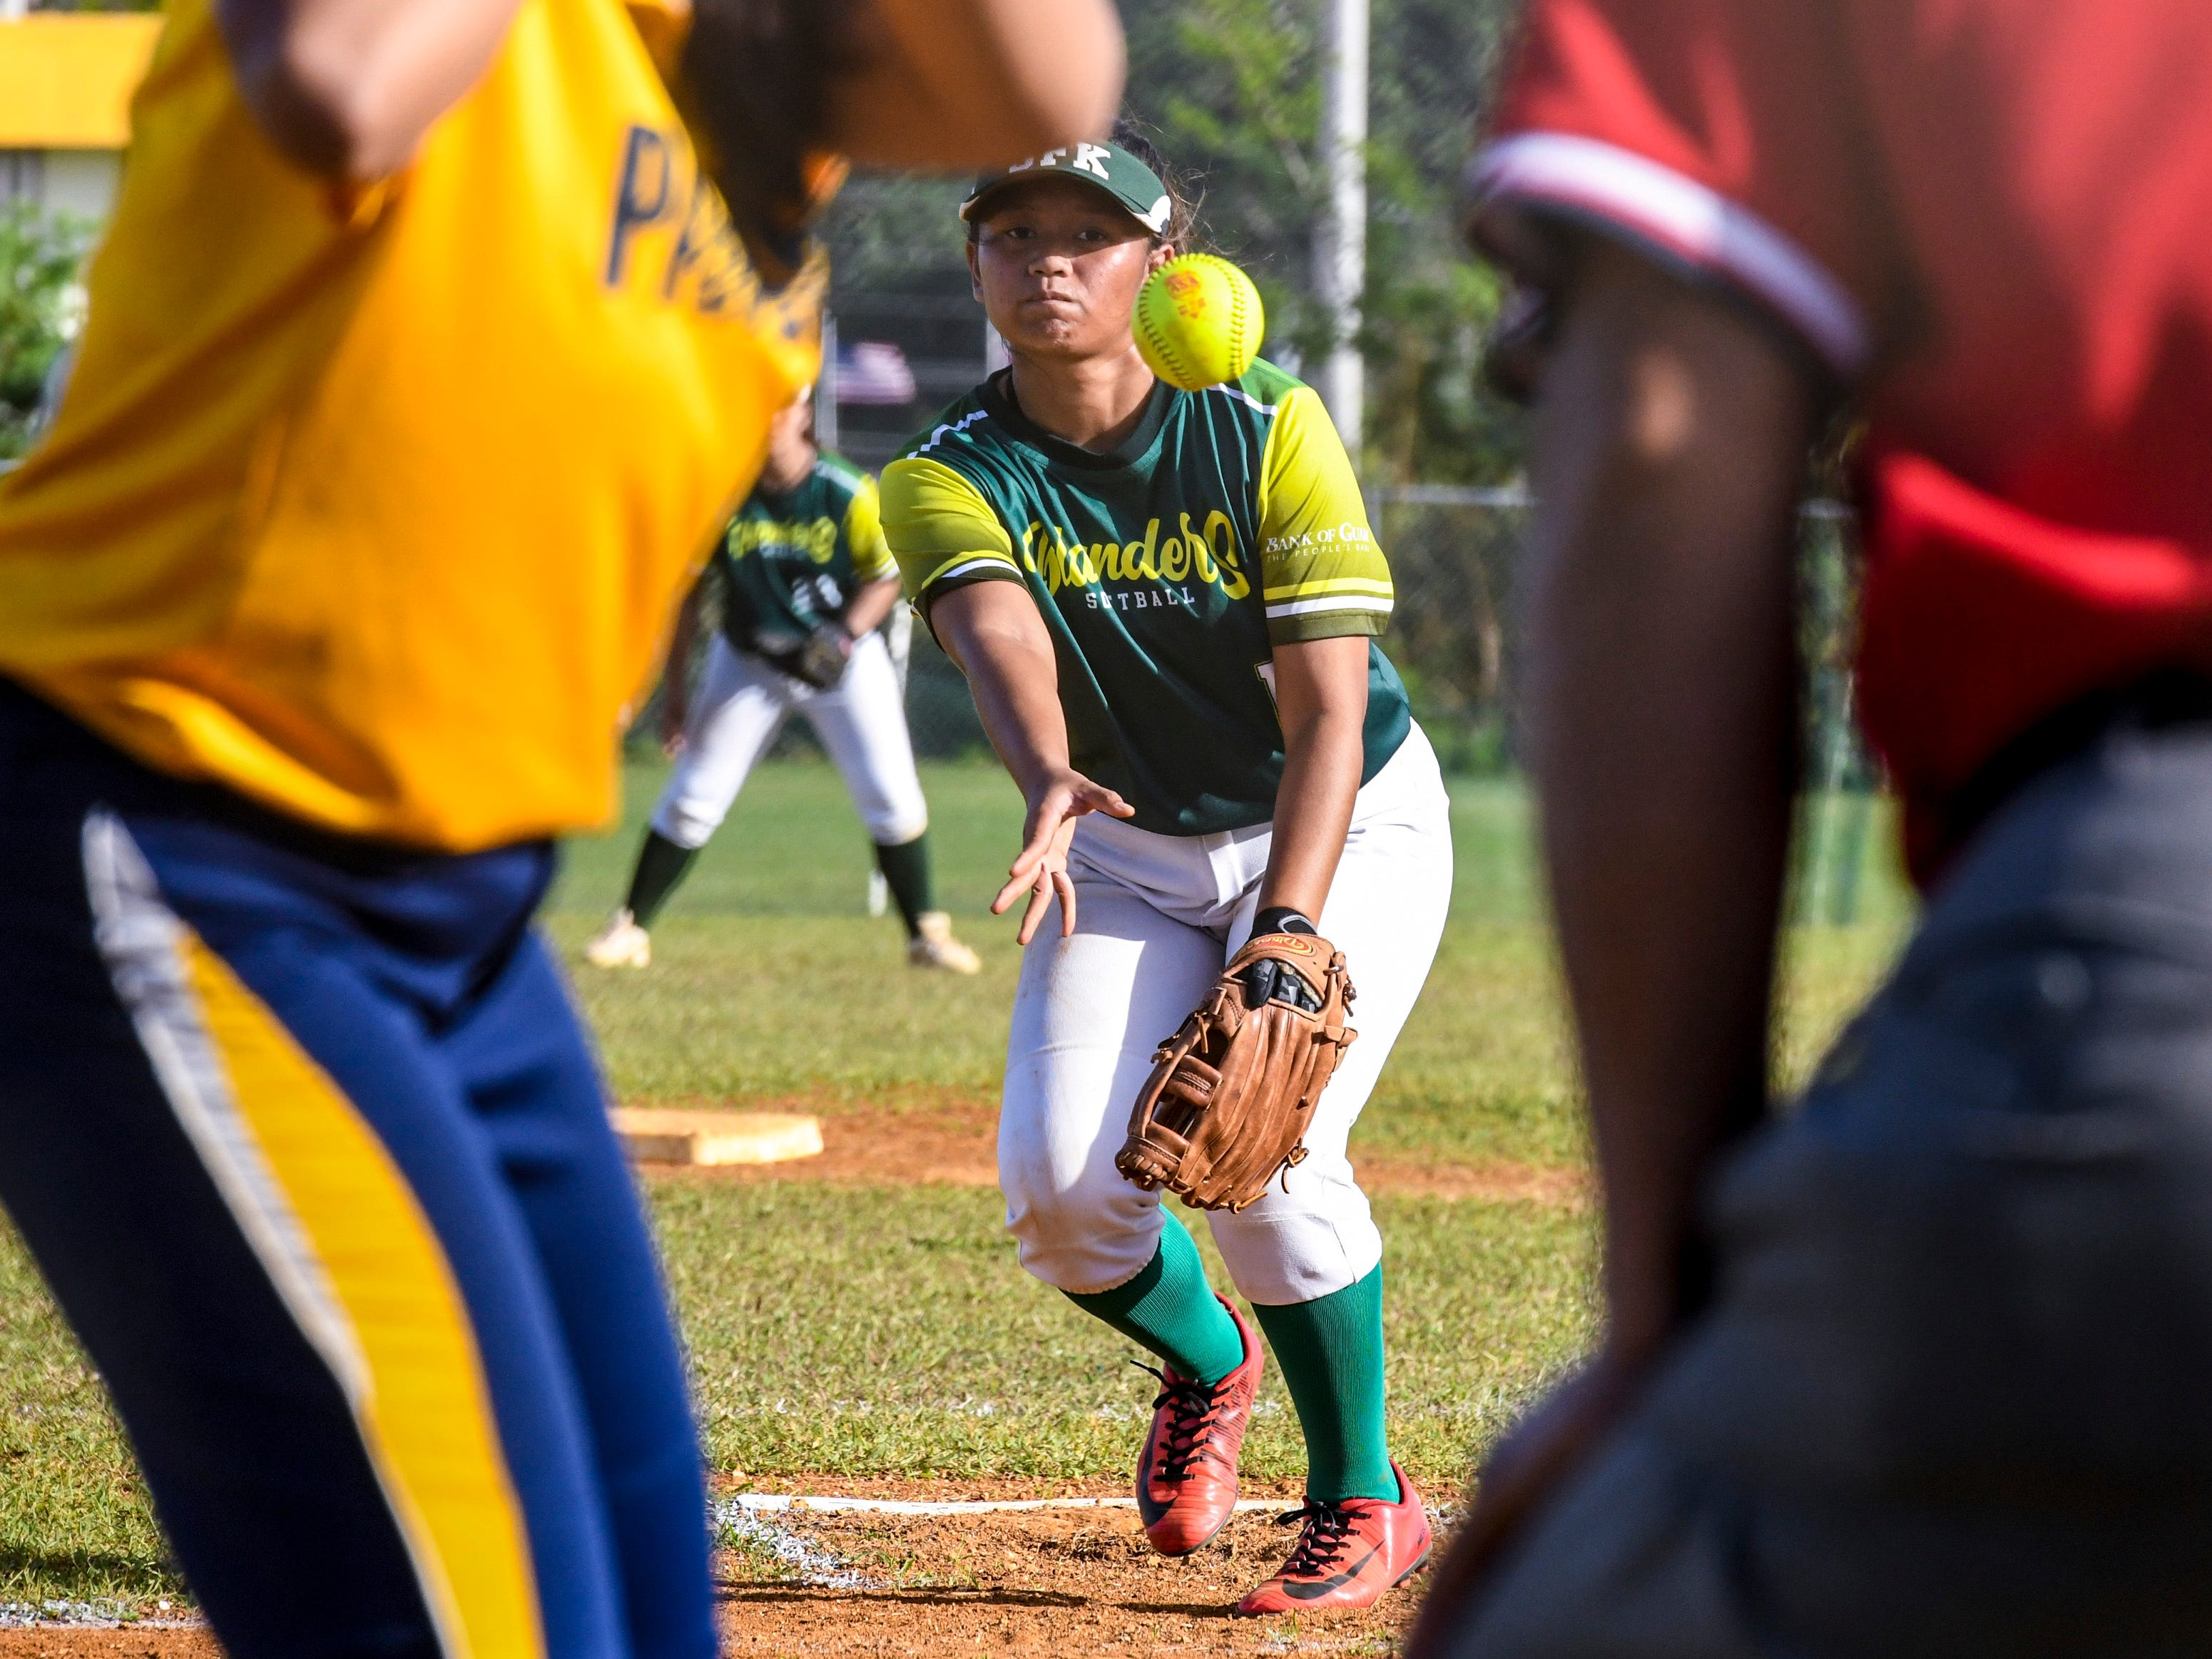 The John F. Kennedy Islanders' pitcher, Emani Gutierrez, lets loose a pitcher to a Guam High Panther batter during their IIAAG girls softball matchup at the JFK High School campus in Tamuning on Thursday, Feb. 7, 2019.